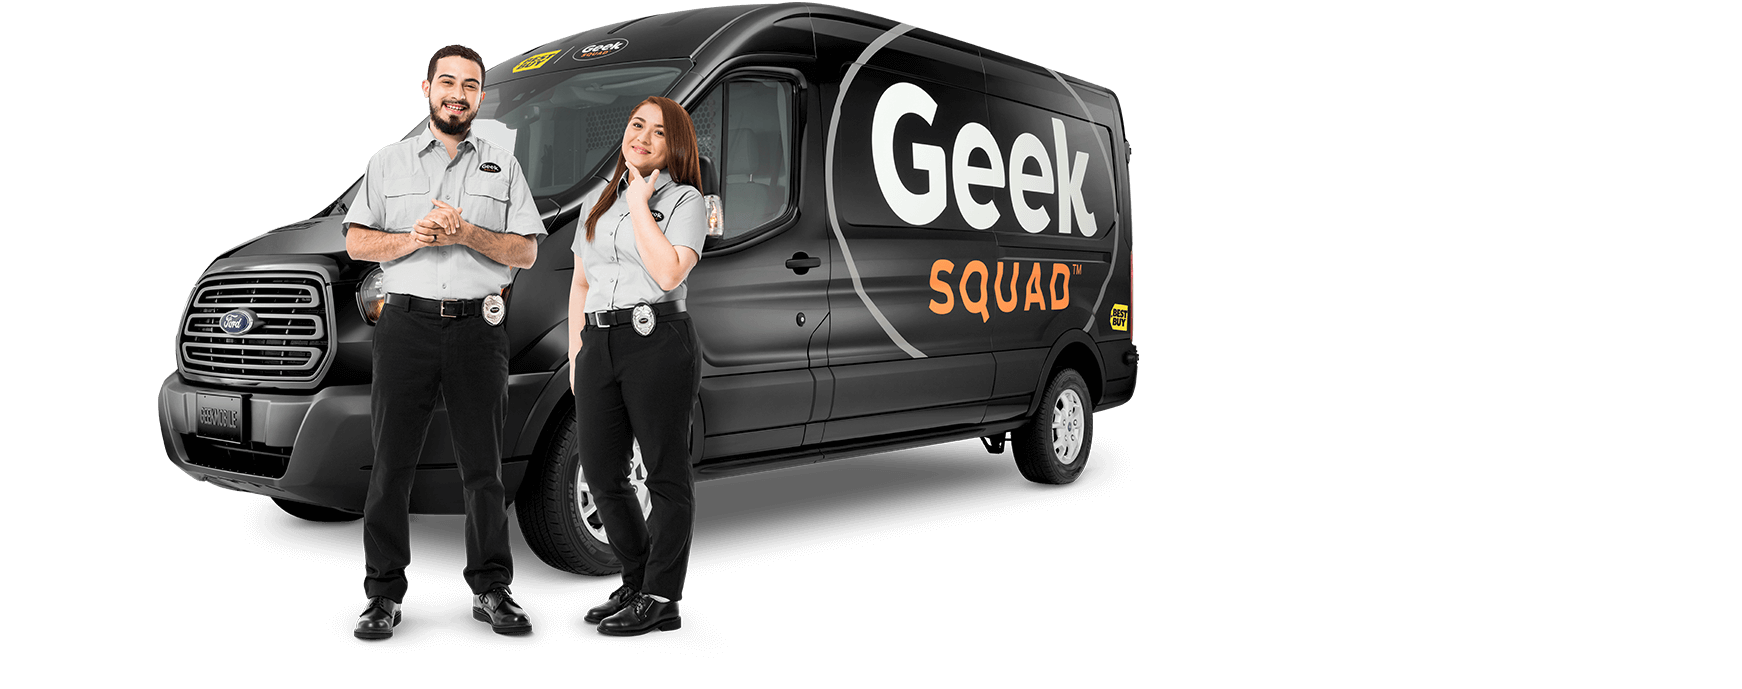 geek squad car stereo install